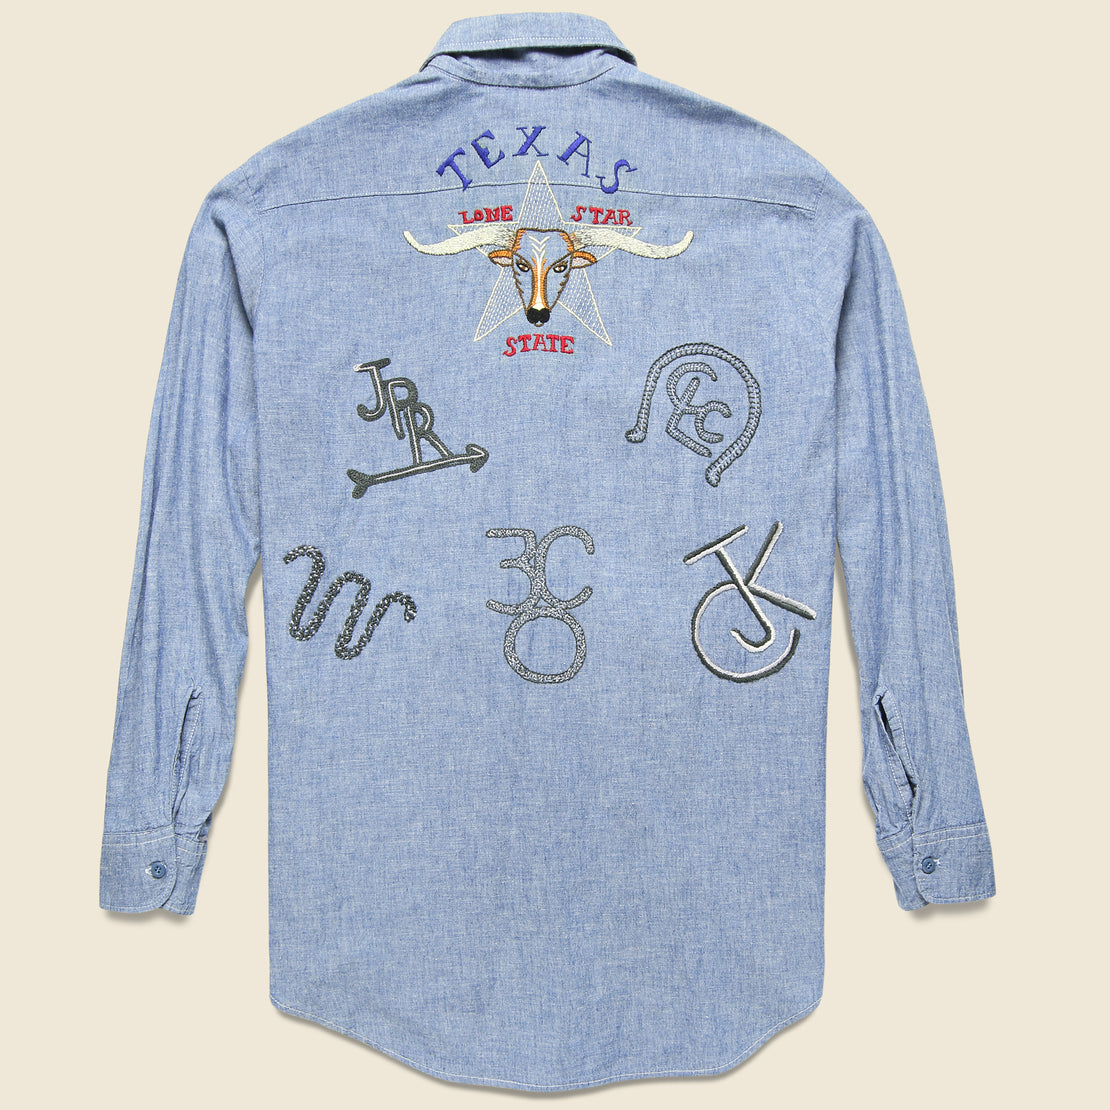 Jolly Knot Club Embroidered Chambray Shirt - The Texas Brand